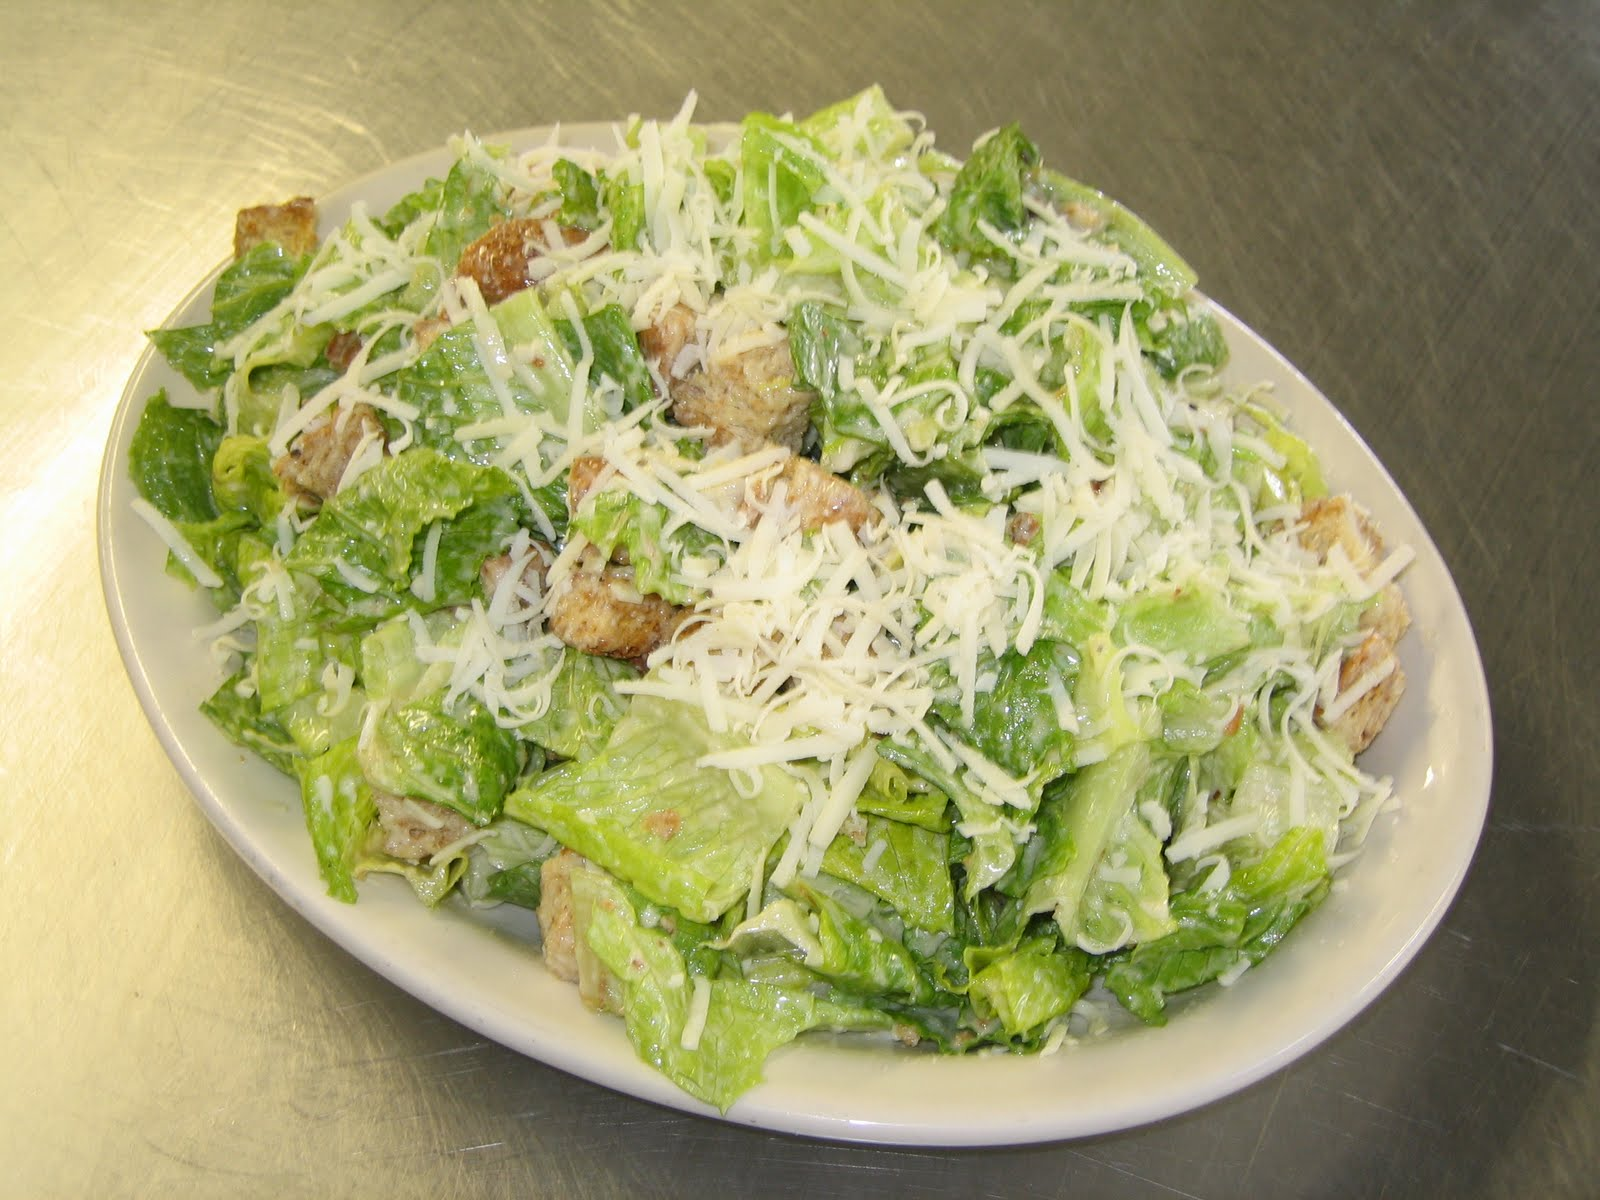 Caesar Salad - No Raw Egg, Hold the Anchovies